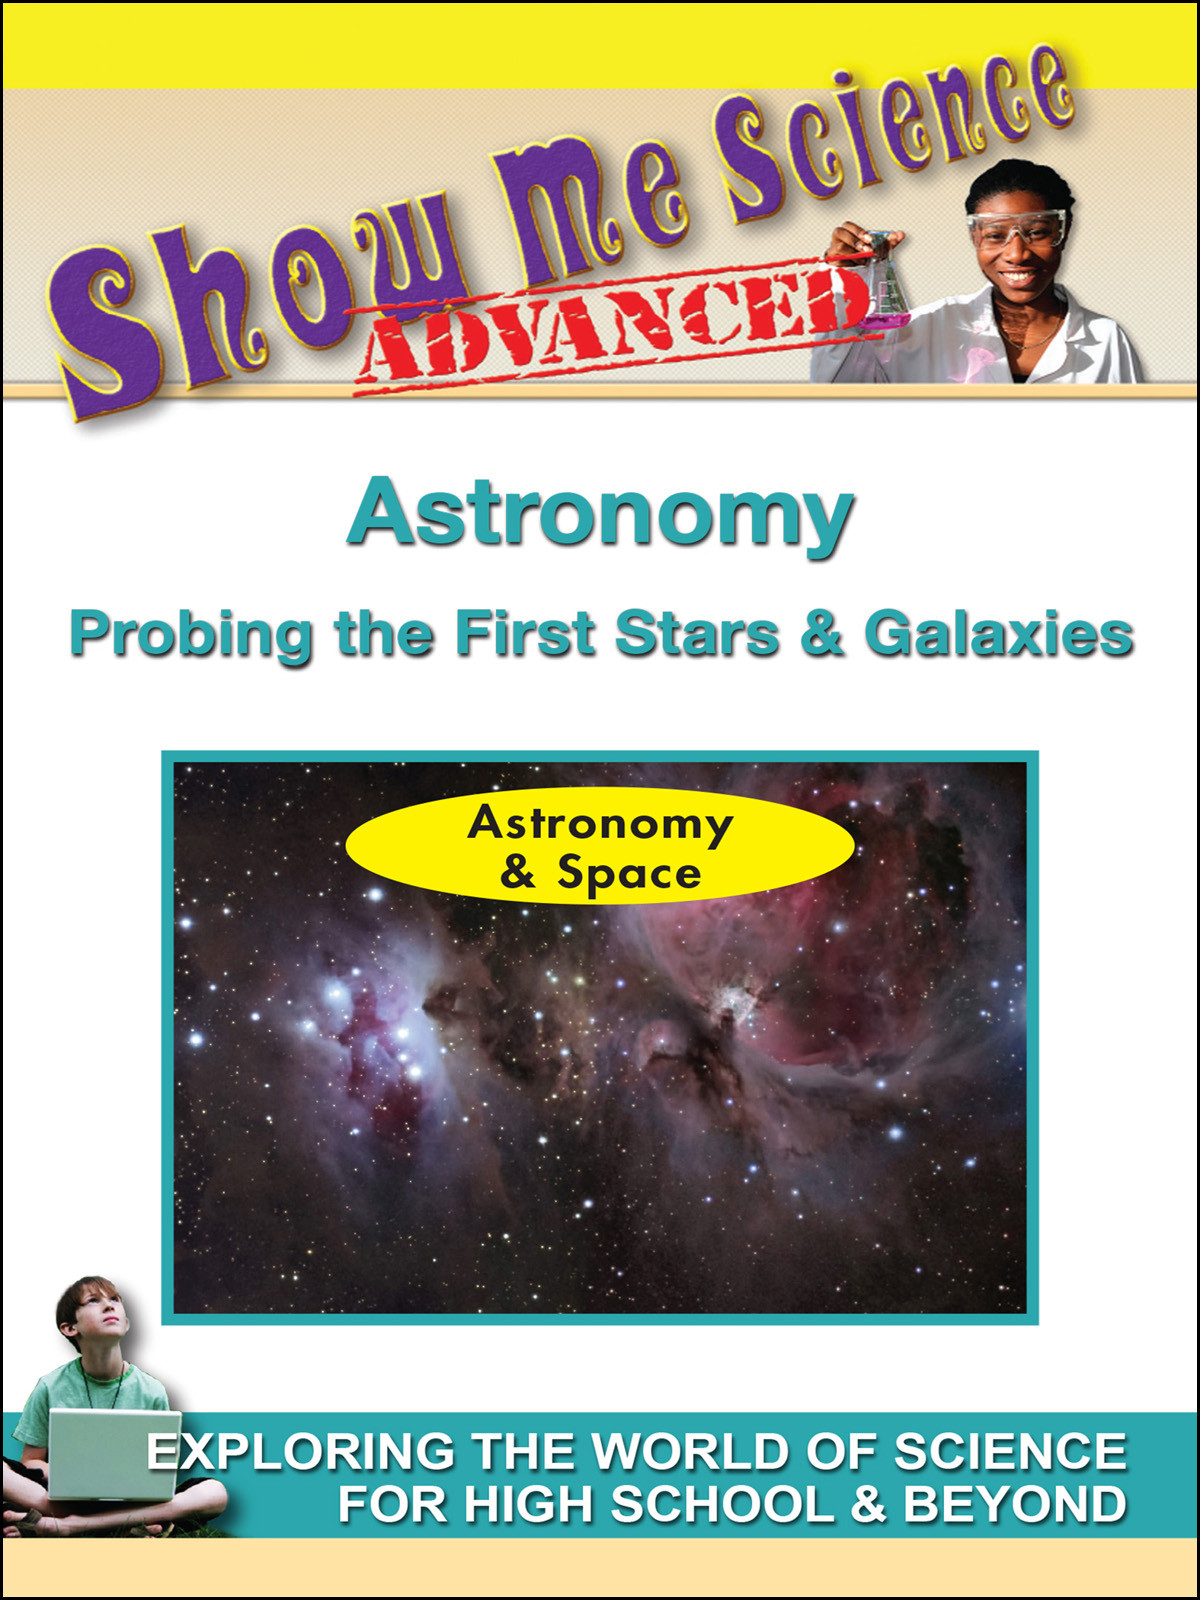 K4609 - Astronomy Probing the First Stars & Galaxies